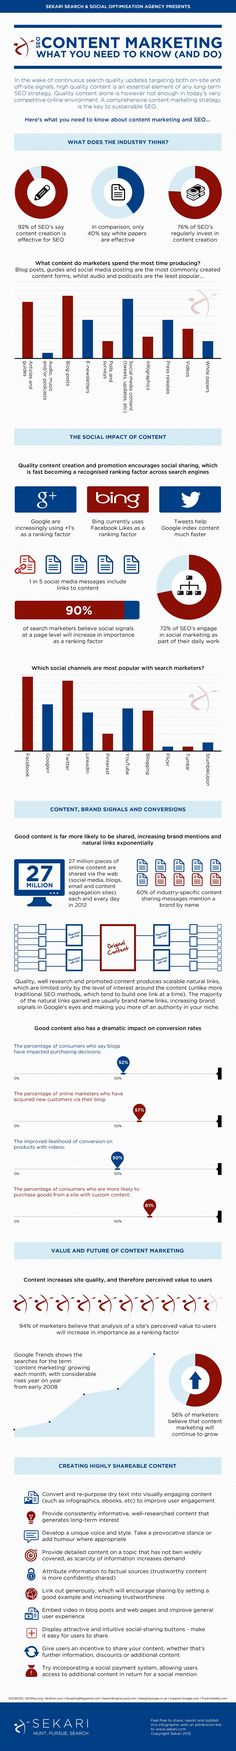 Infographic: SEO Content Marketing: What You Need to Know (and Do)